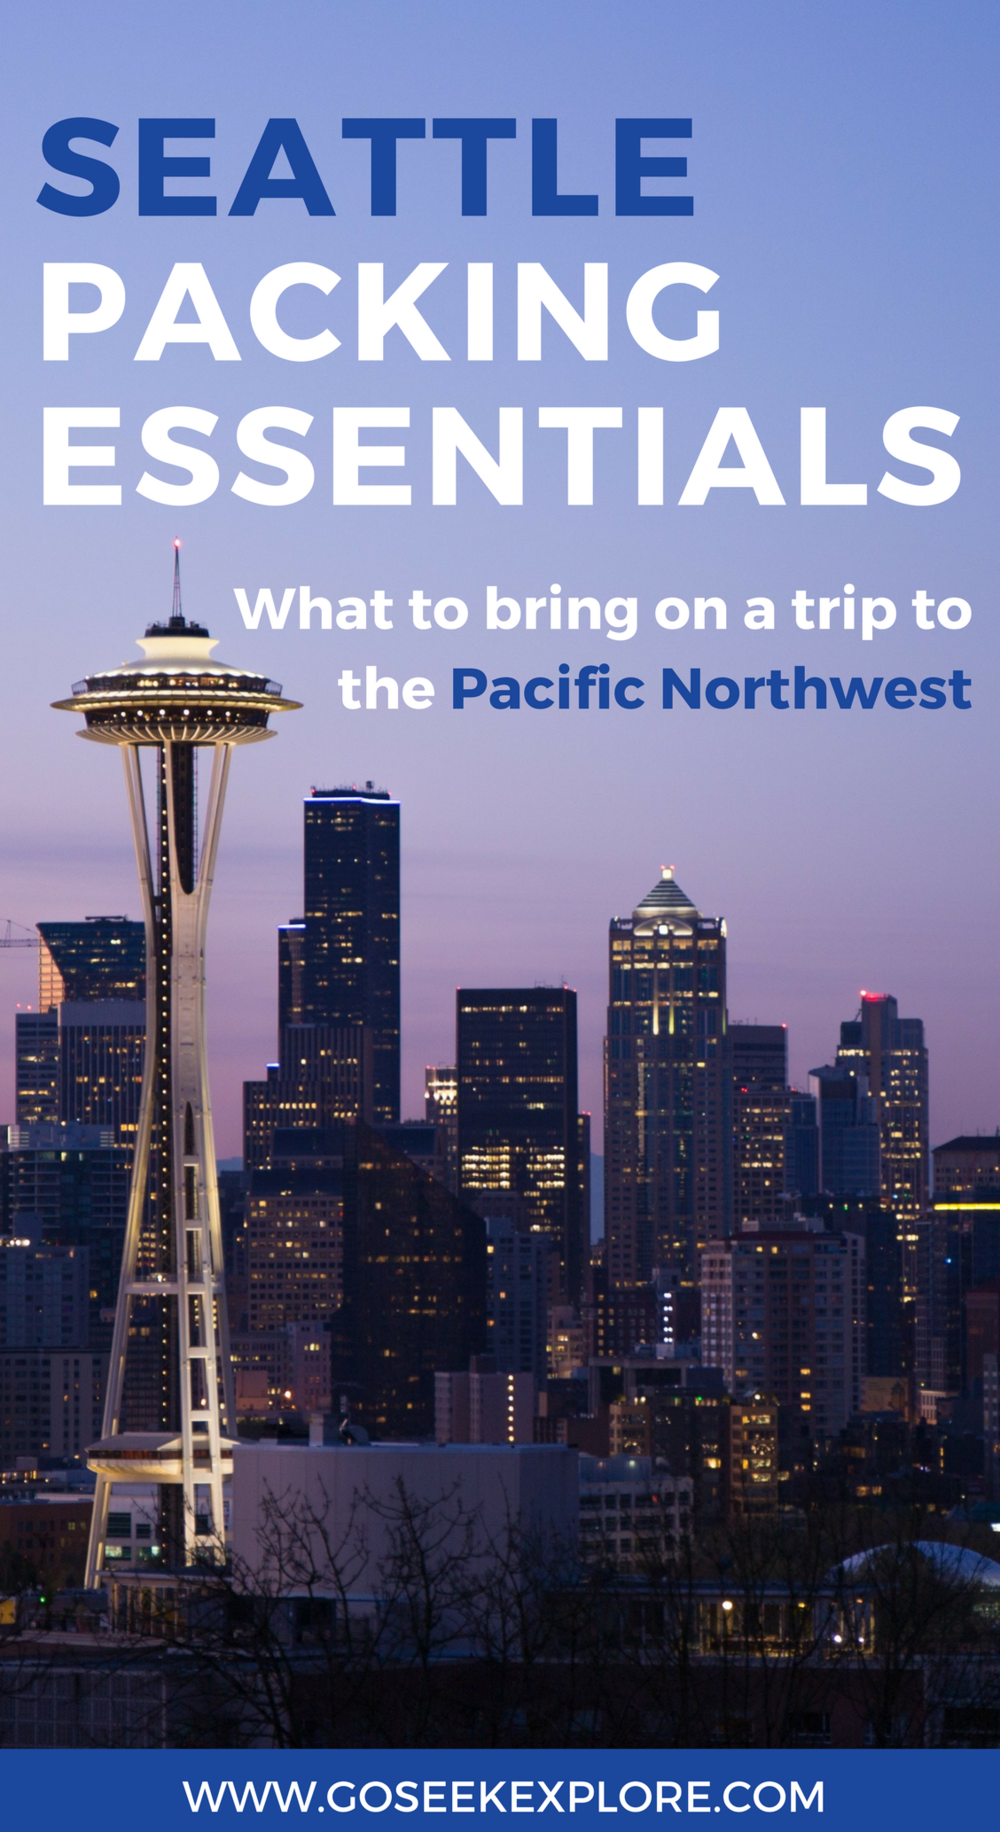 Seattle packing essentials: what to bring on a trip to the Pacific Northwest| www.goseekexplore.com